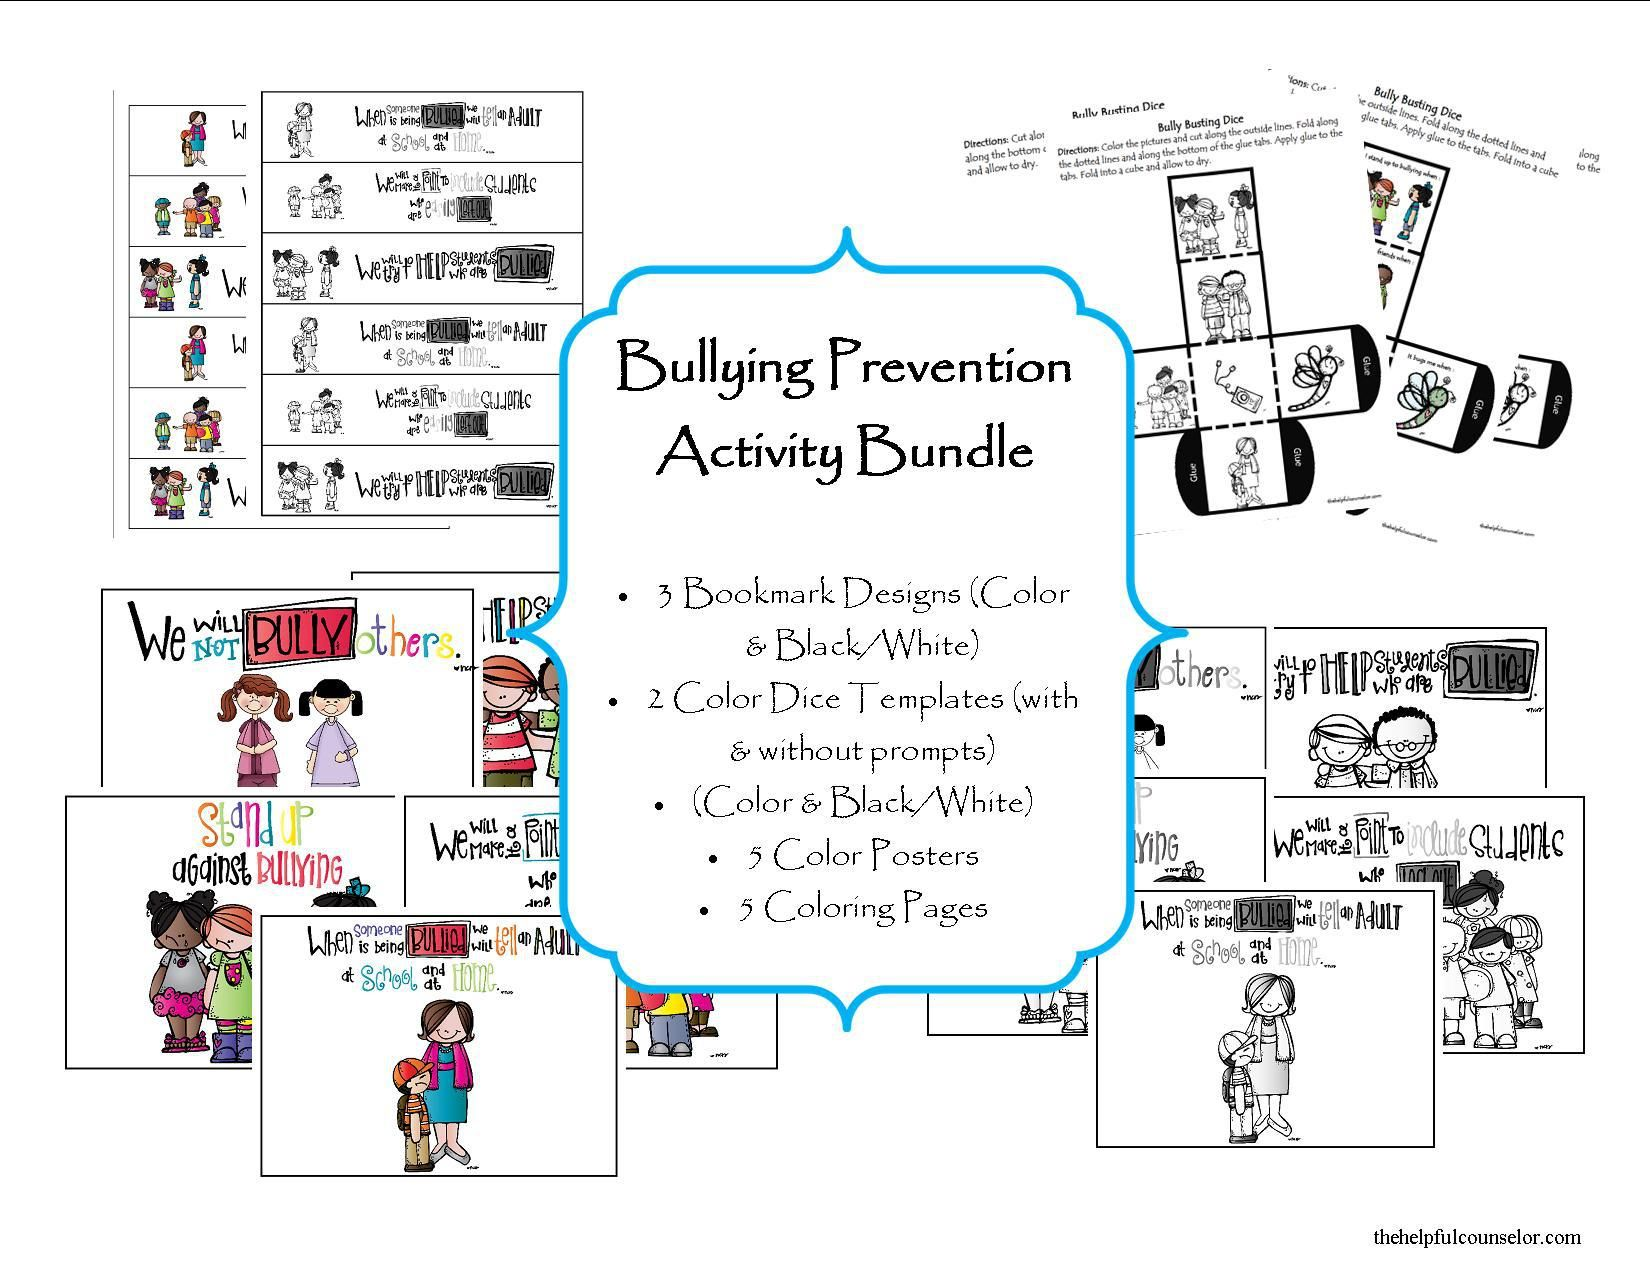 Bullying Prevention Activity Bundle